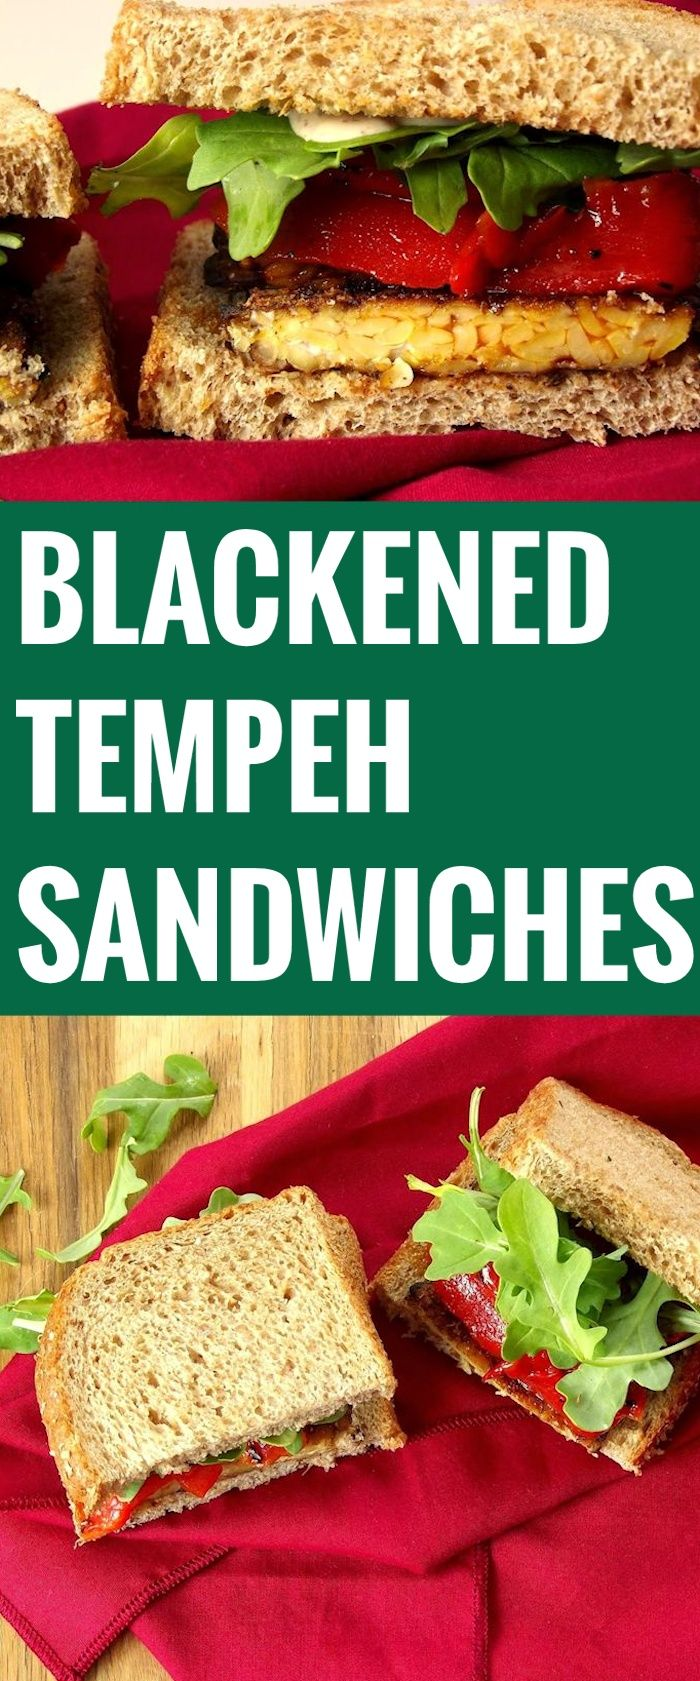 Blackened Tempeh Sandwiches